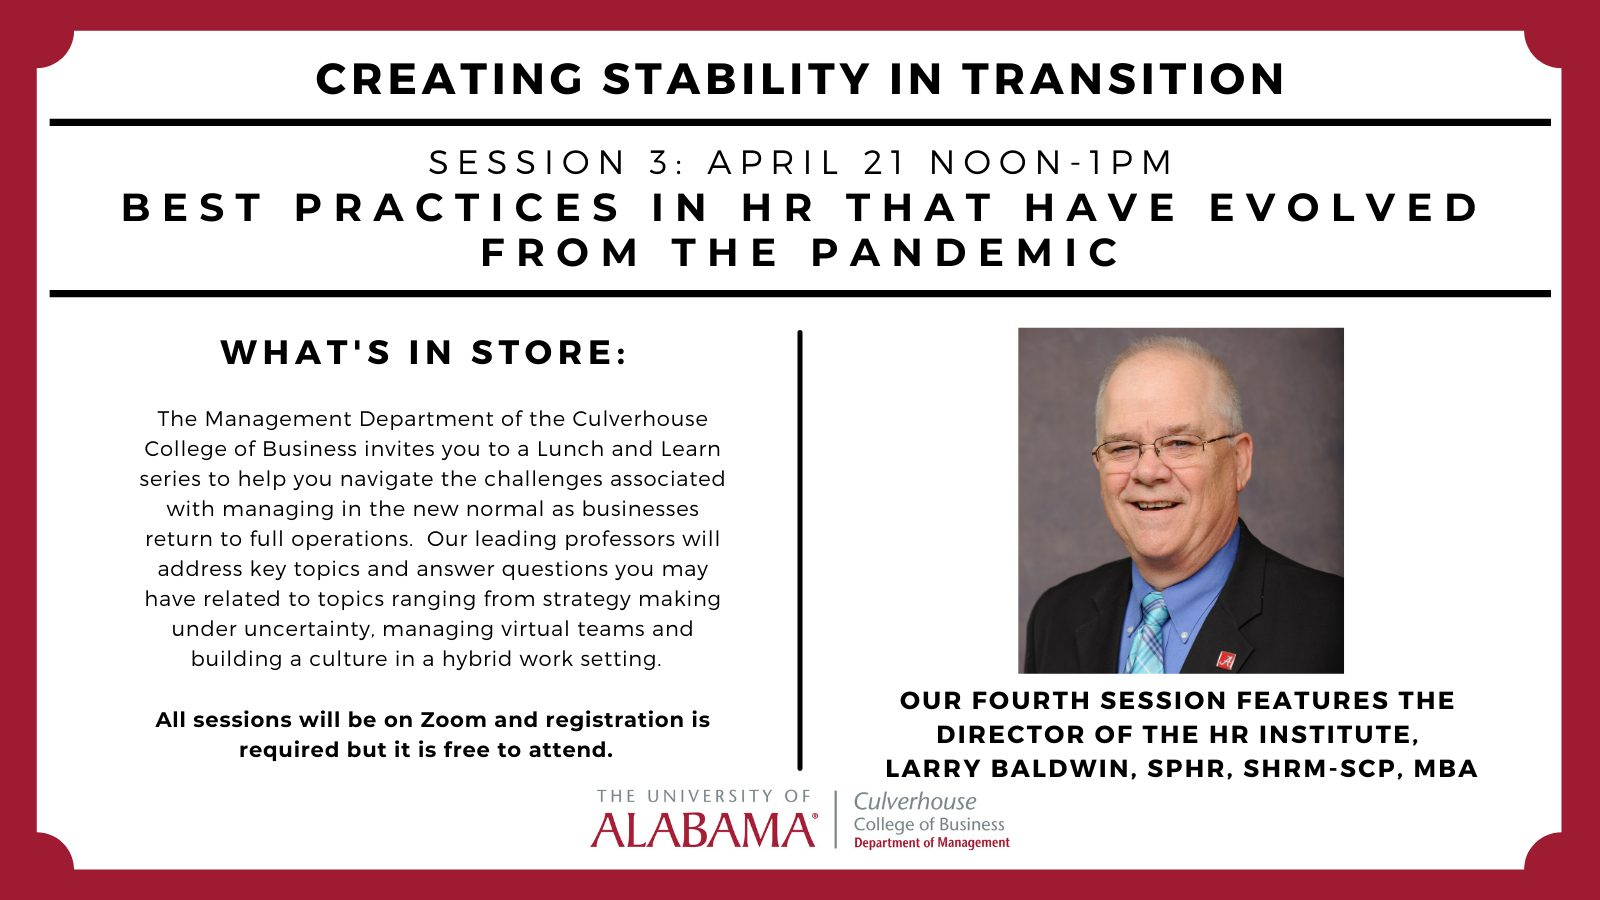 Creating Stability in Transition: Session 4 Larry Baldwin